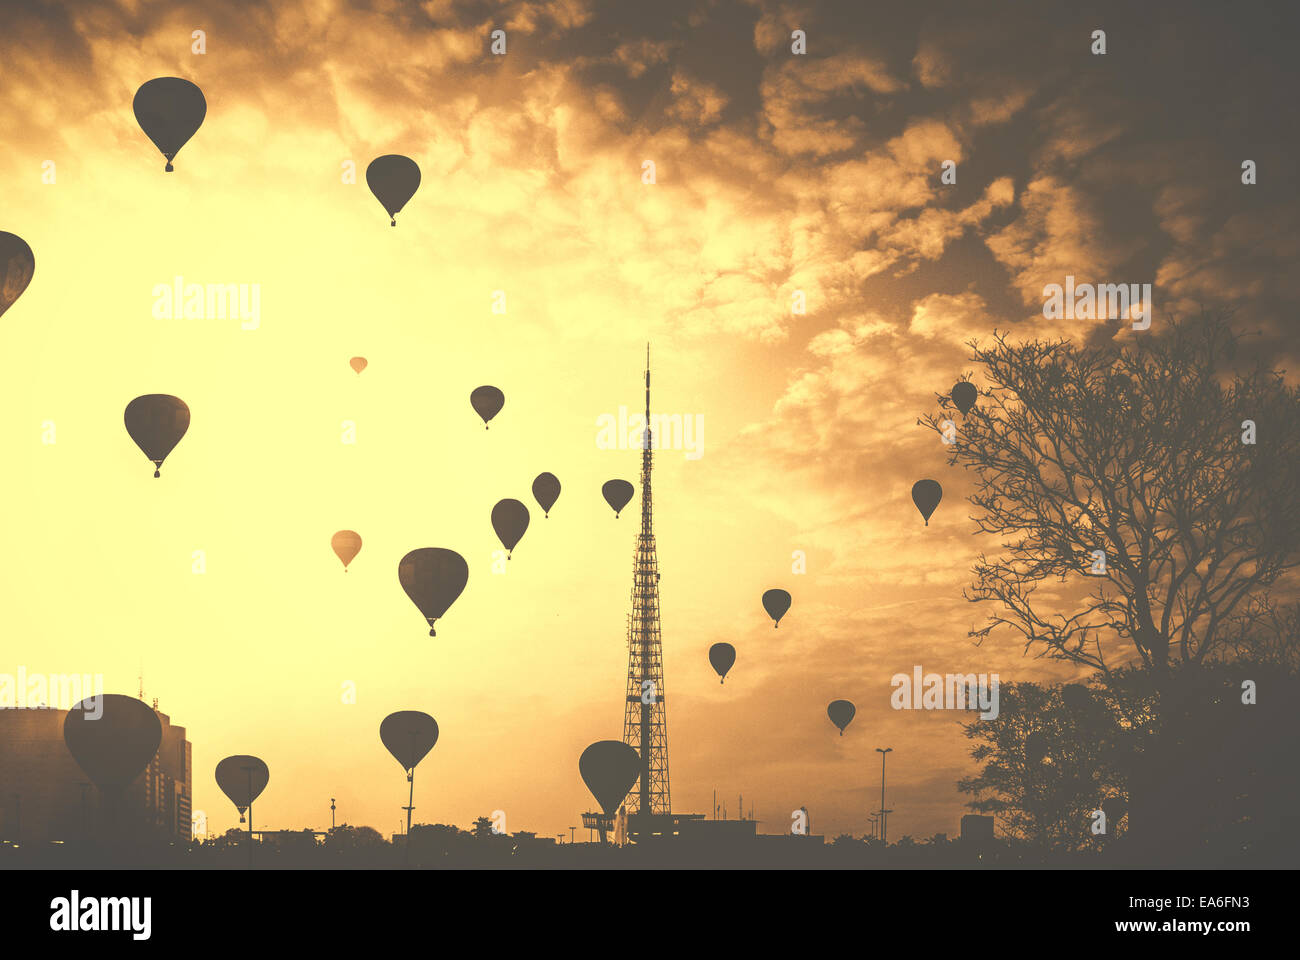 Brazil, Central-West Region, Brazil Federal District, DF, Brasilia, View of hot air balloons in sky - Stock Image